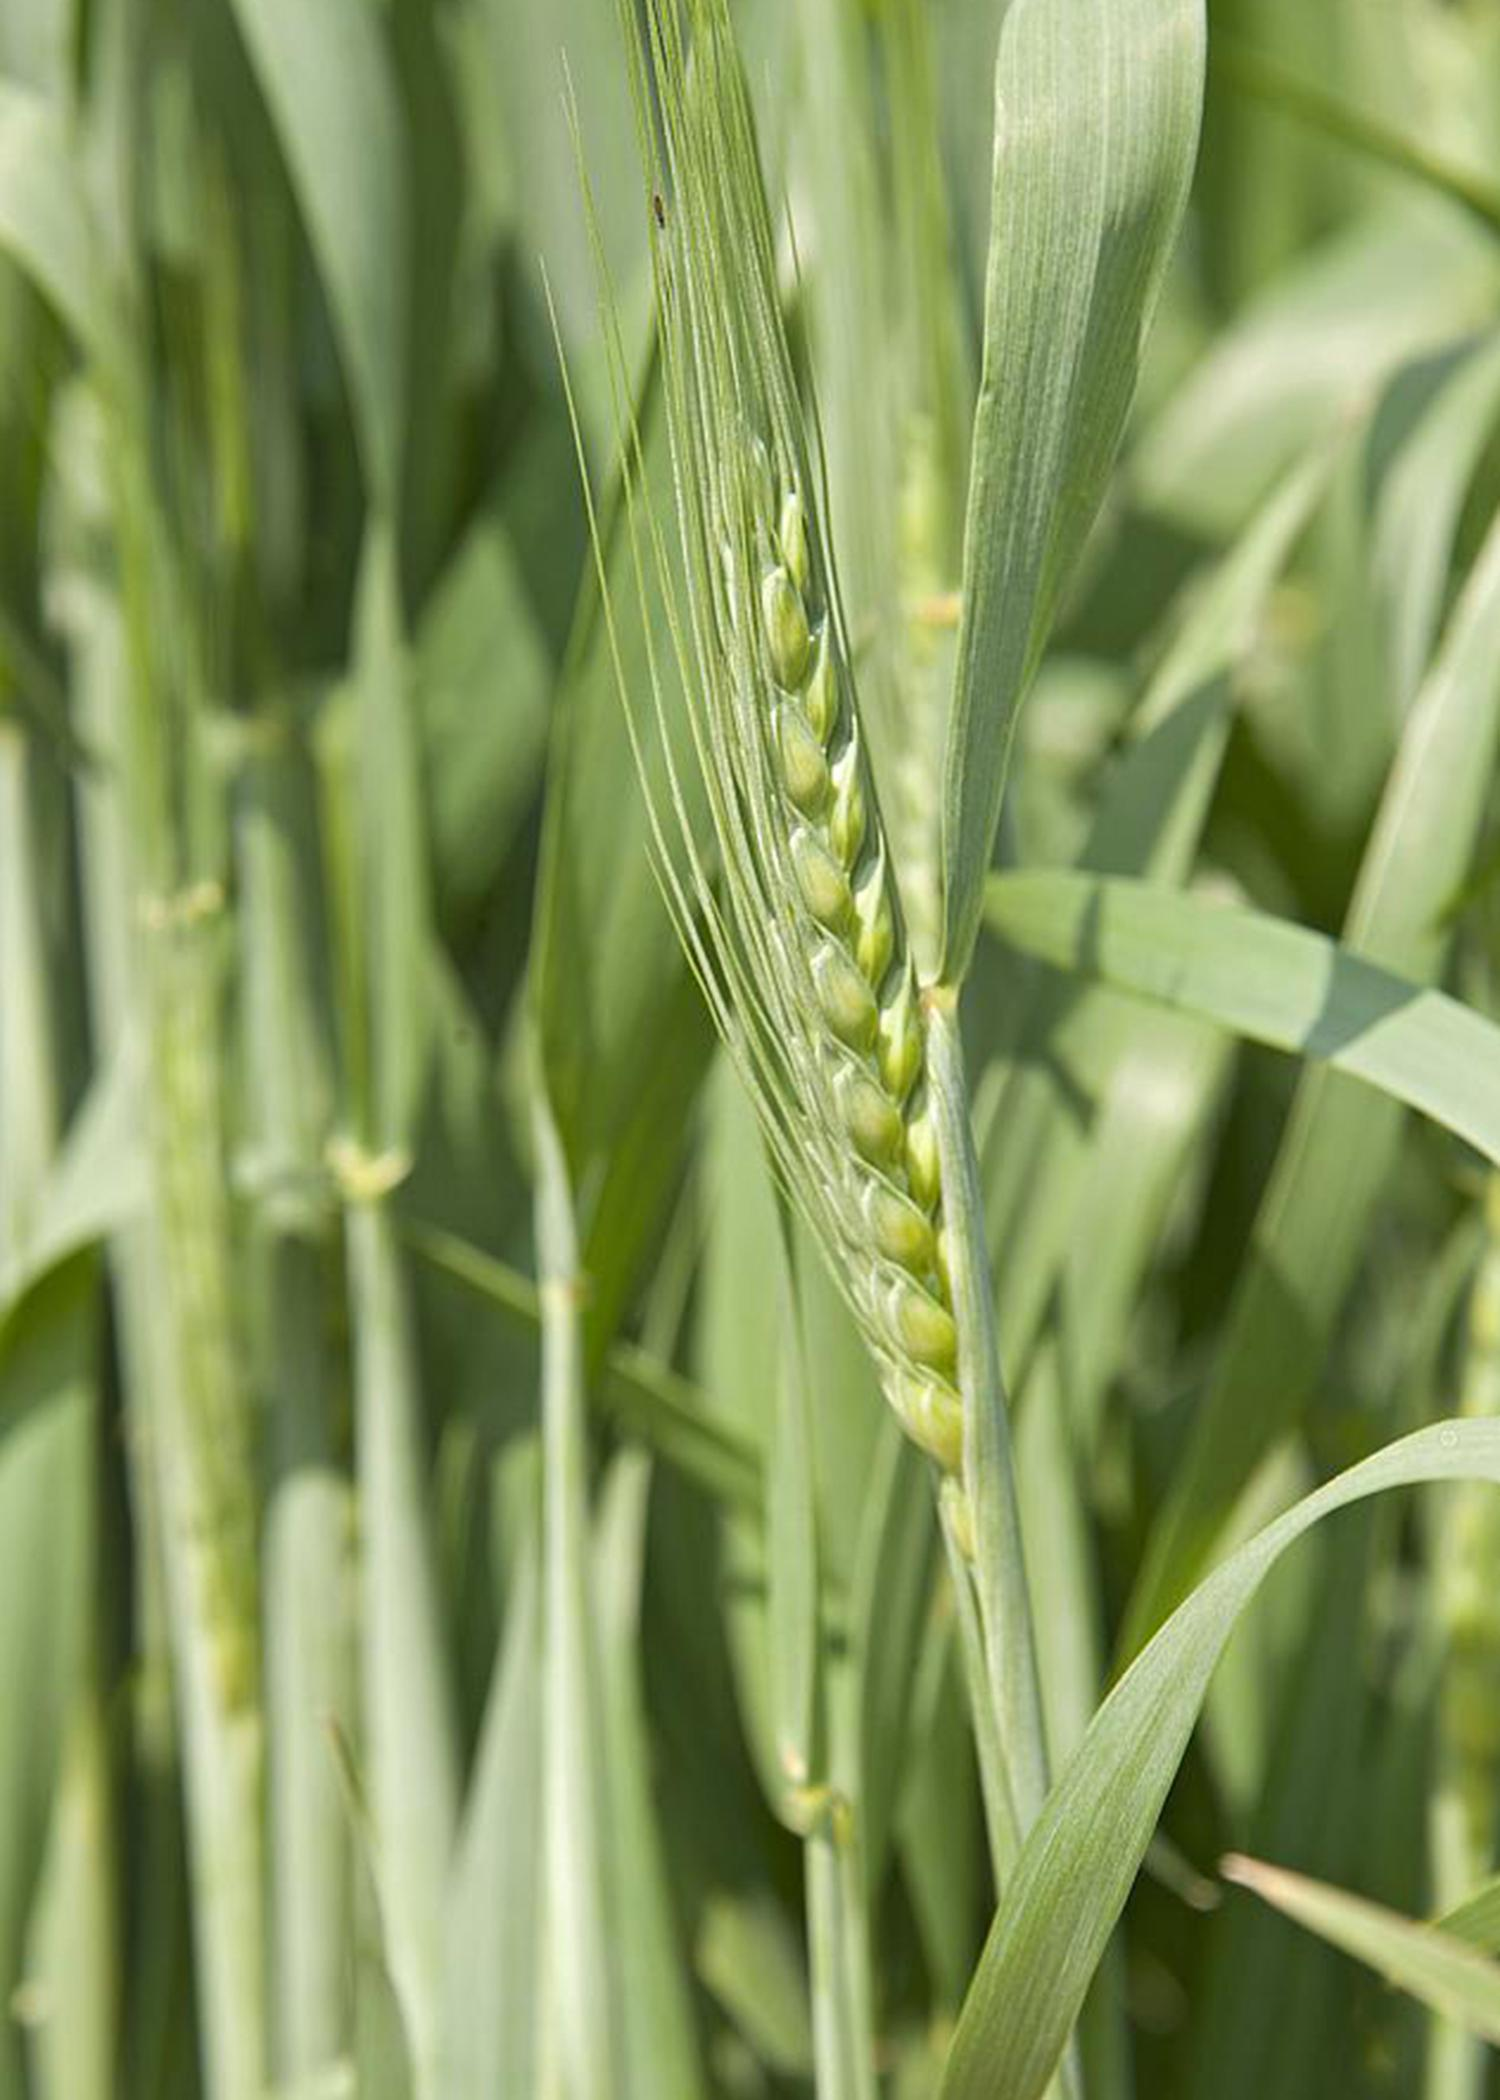 Some producers of winter wheat, such as this wheat grown during the 2013-2014 season at the Mississippi State University R.R. Foil Plant Science Research Center, are eligible for a Supplemental Coverage Option in addition to their crop insurance policies. (File Photo by MSU Ag Communications/Kat Lawrence)